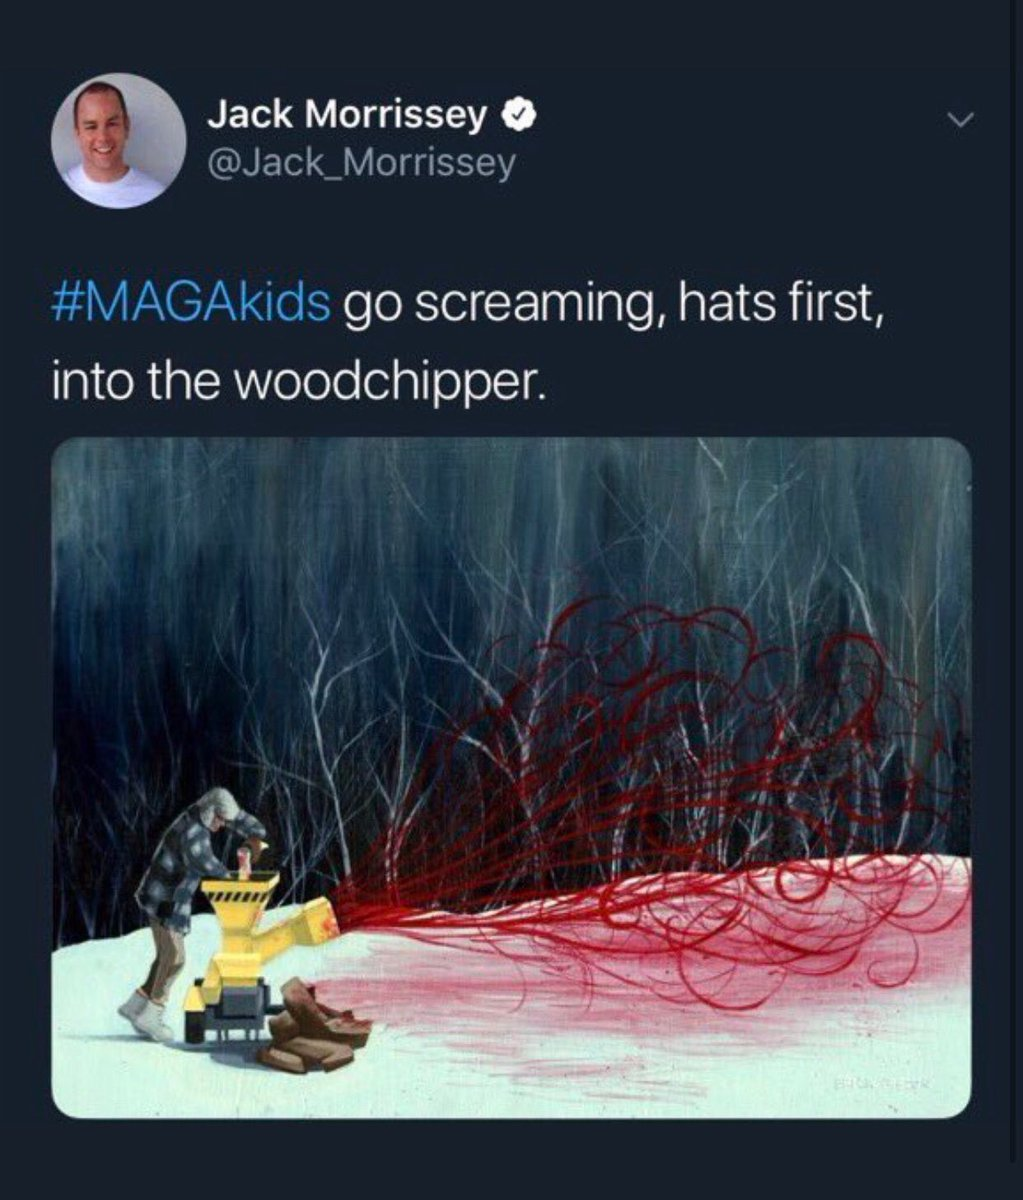 """Jack is a producer for Disney, openly advocating to put conservative kids in a woodchipper  I don't care who you are or who you voted for, we all should be condemning this rhetoric and behavior  This is not what """"unity"""" looks like"""